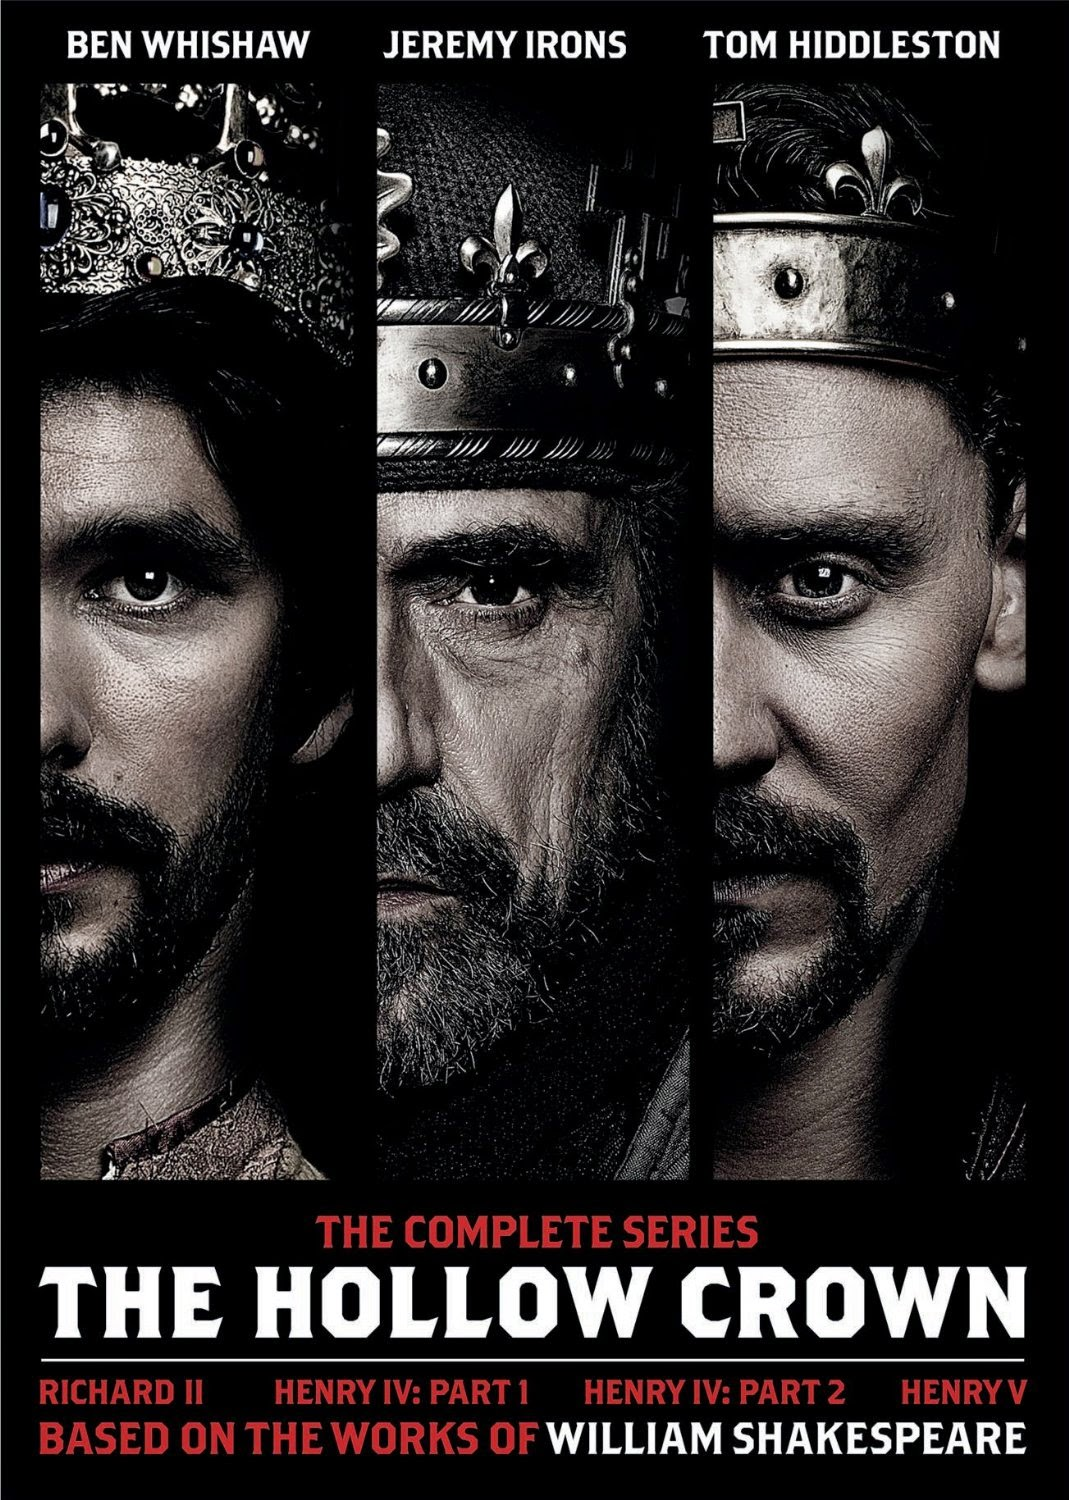 hollow crown szekspir serial jeremy irons tom hiddleston benedict cumberbatch